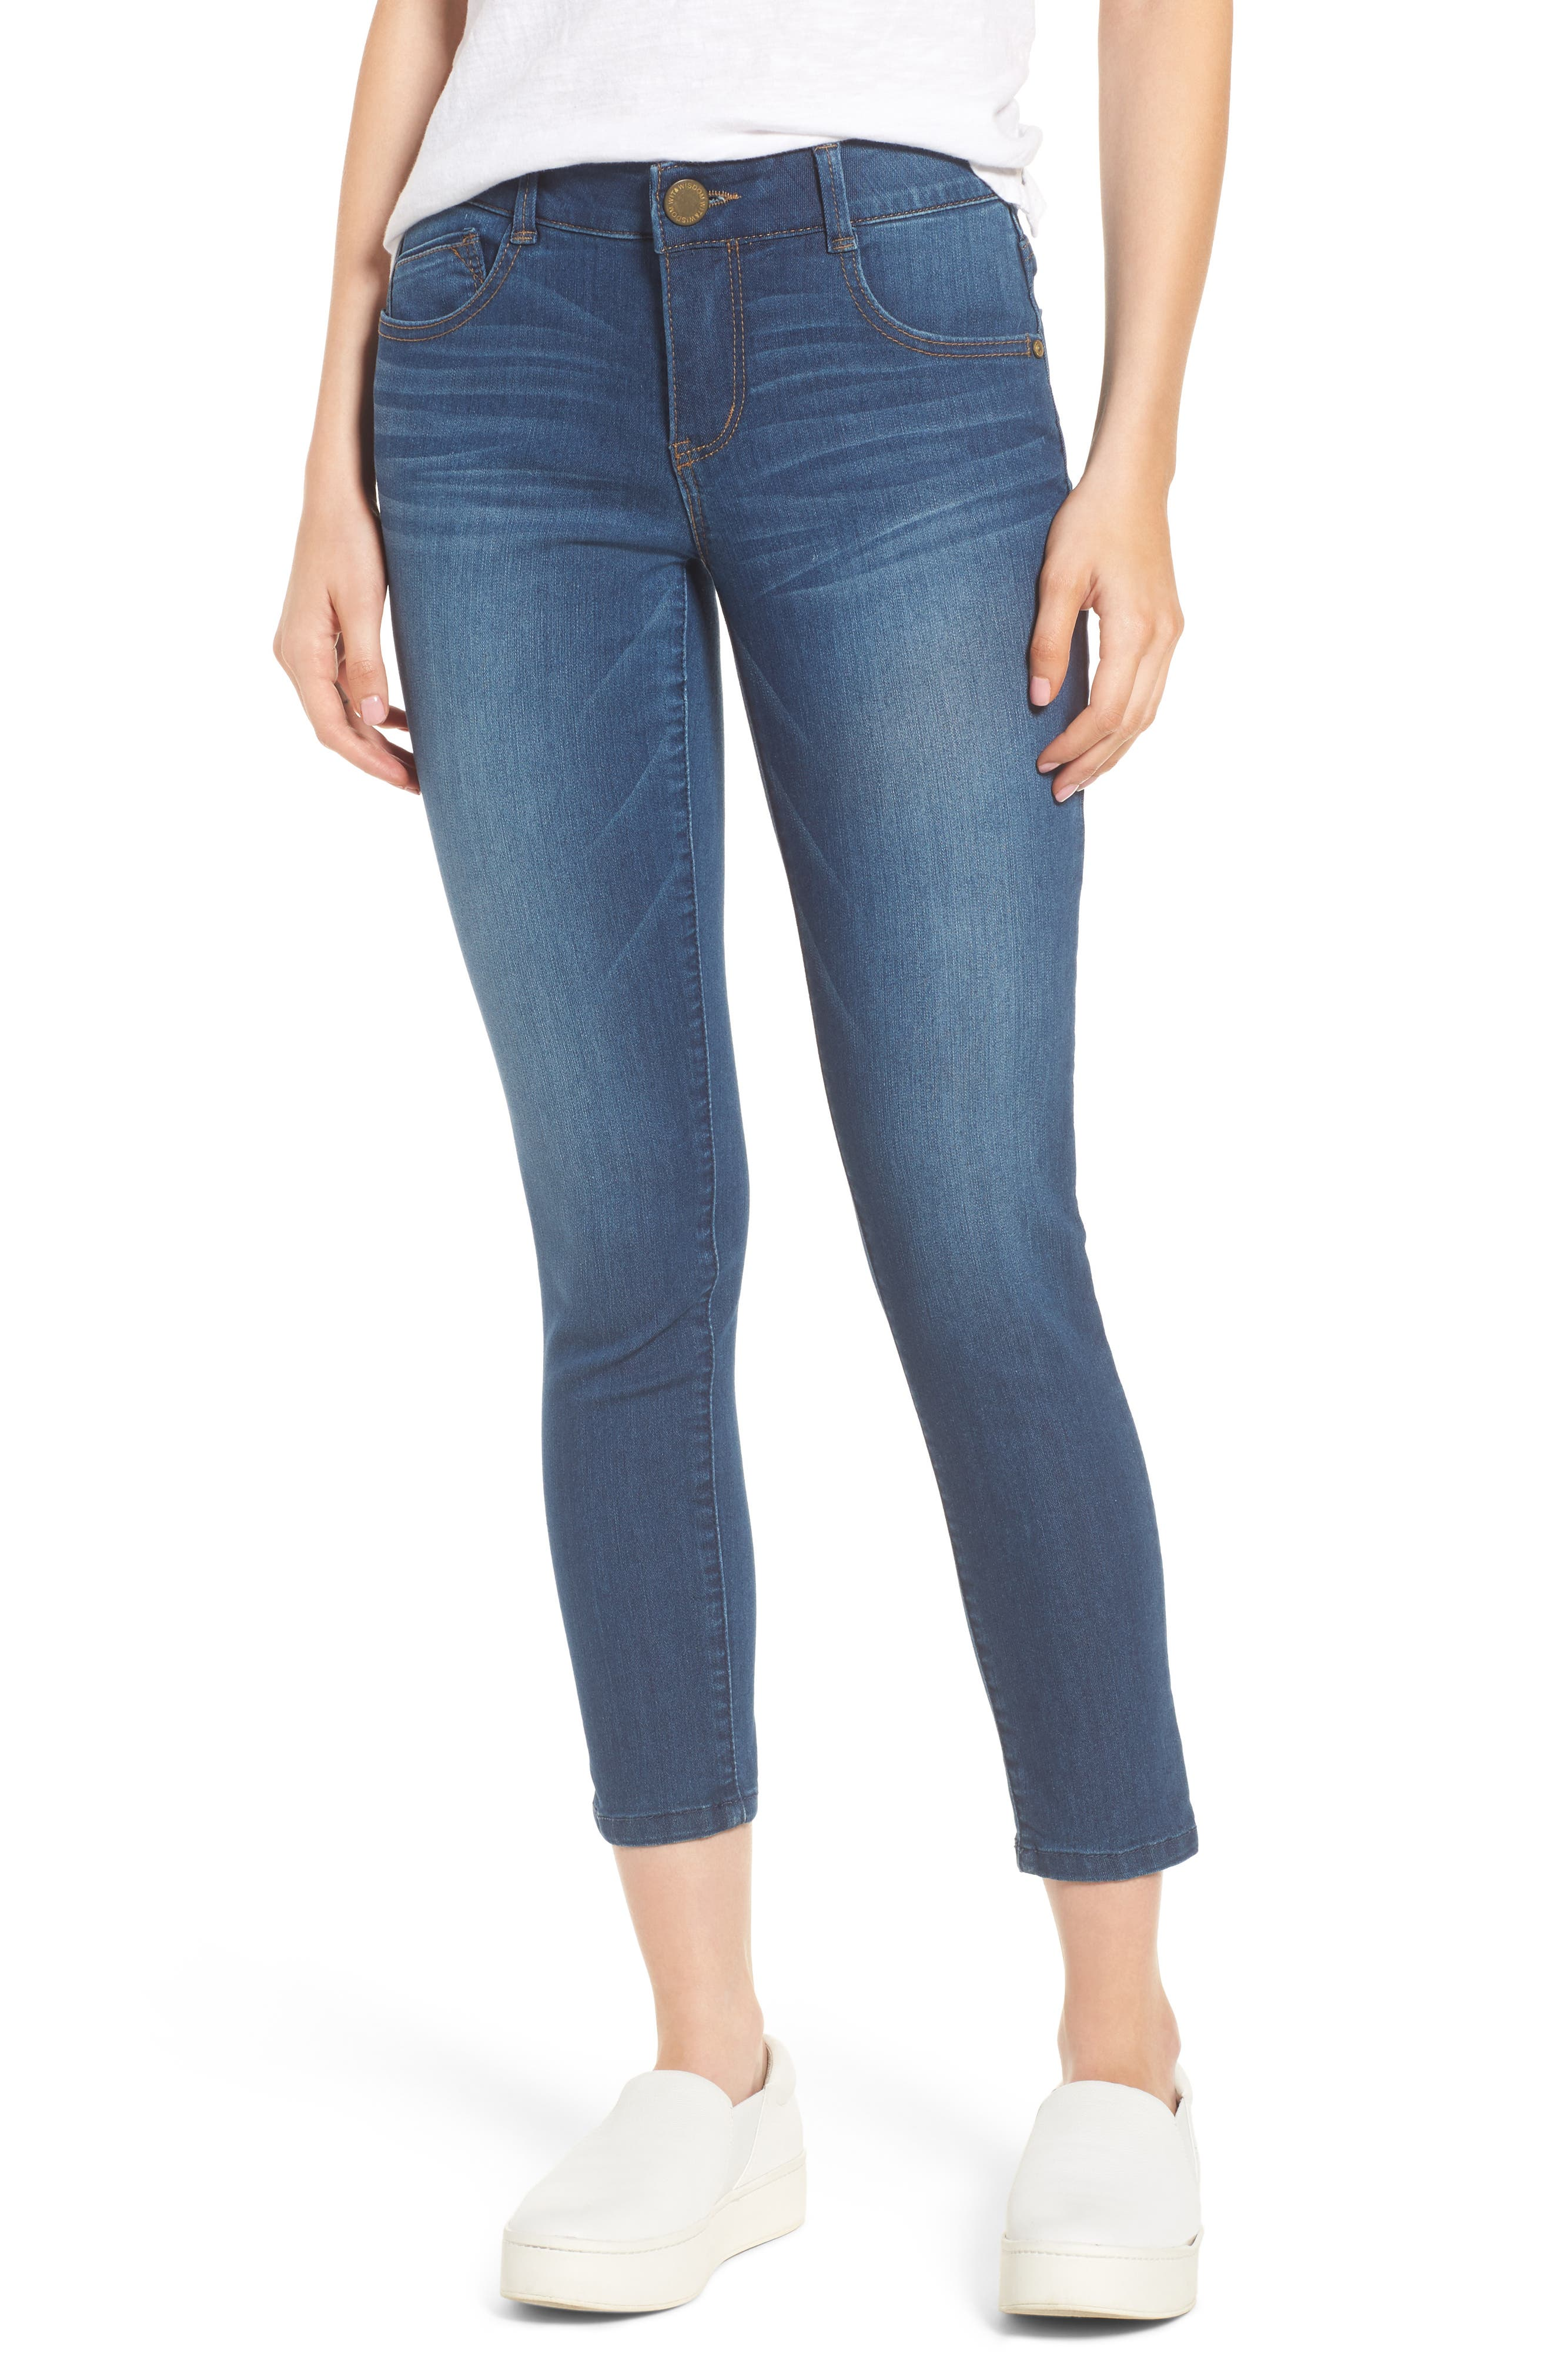 Ab-solution Ankle Skimmer Jeans,                         Main,                         color, Blue